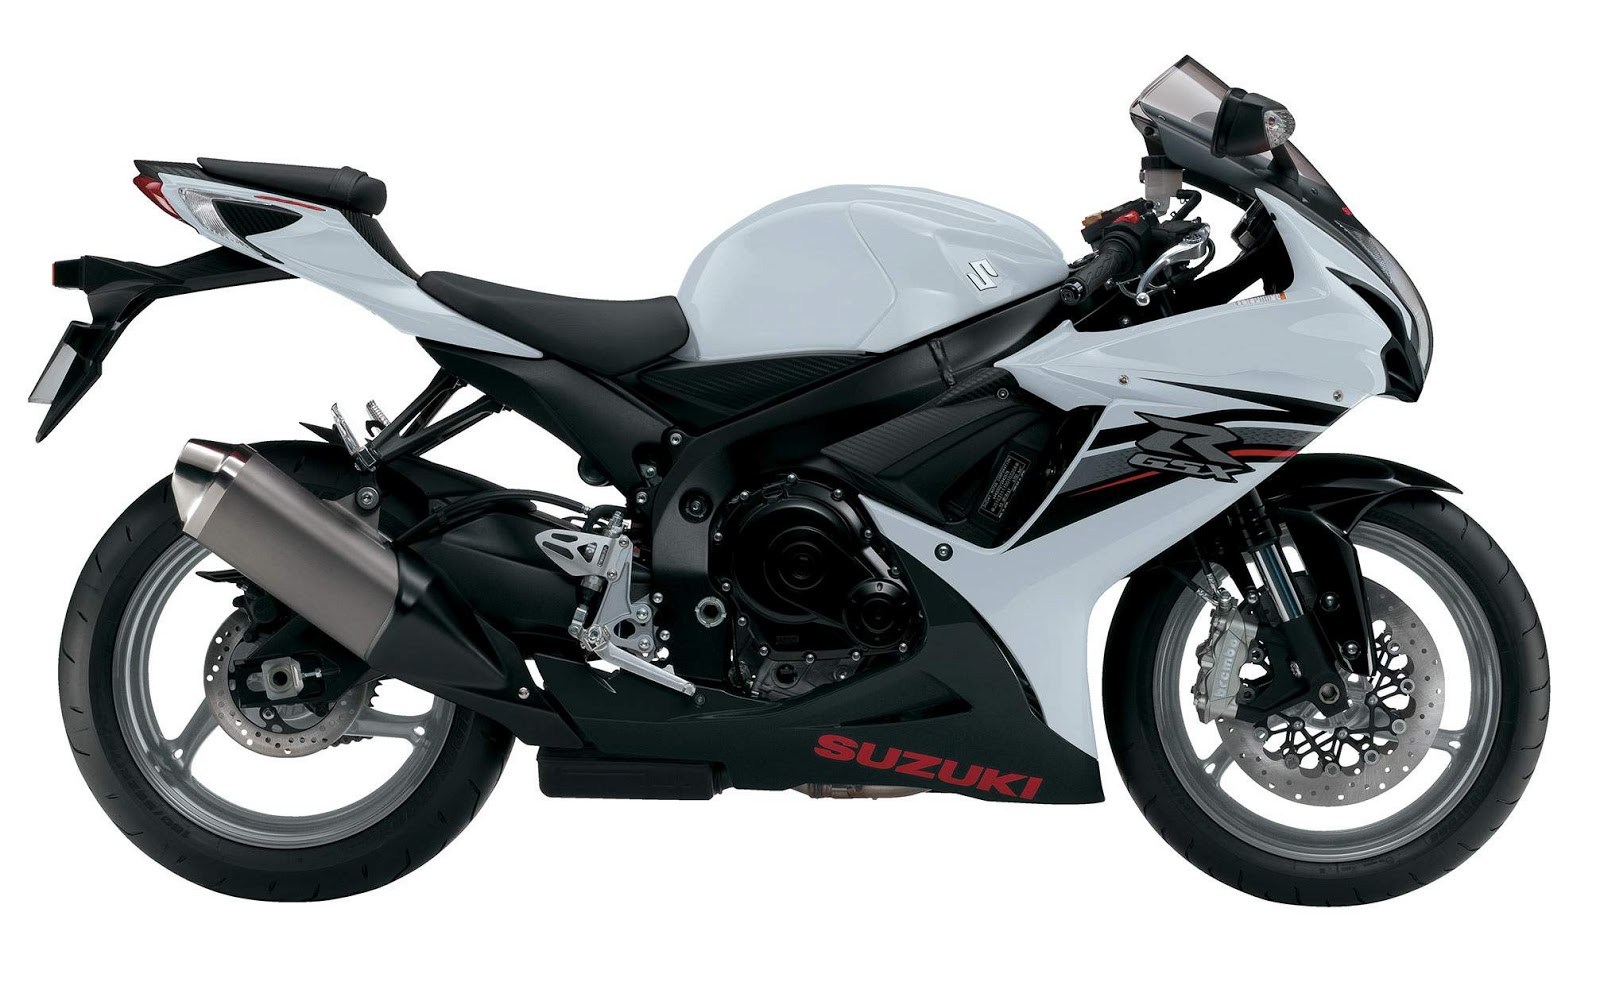 suzuki gsx r 600 2013 all about motorcycles specs. Black Bedroom Furniture Sets. Home Design Ideas